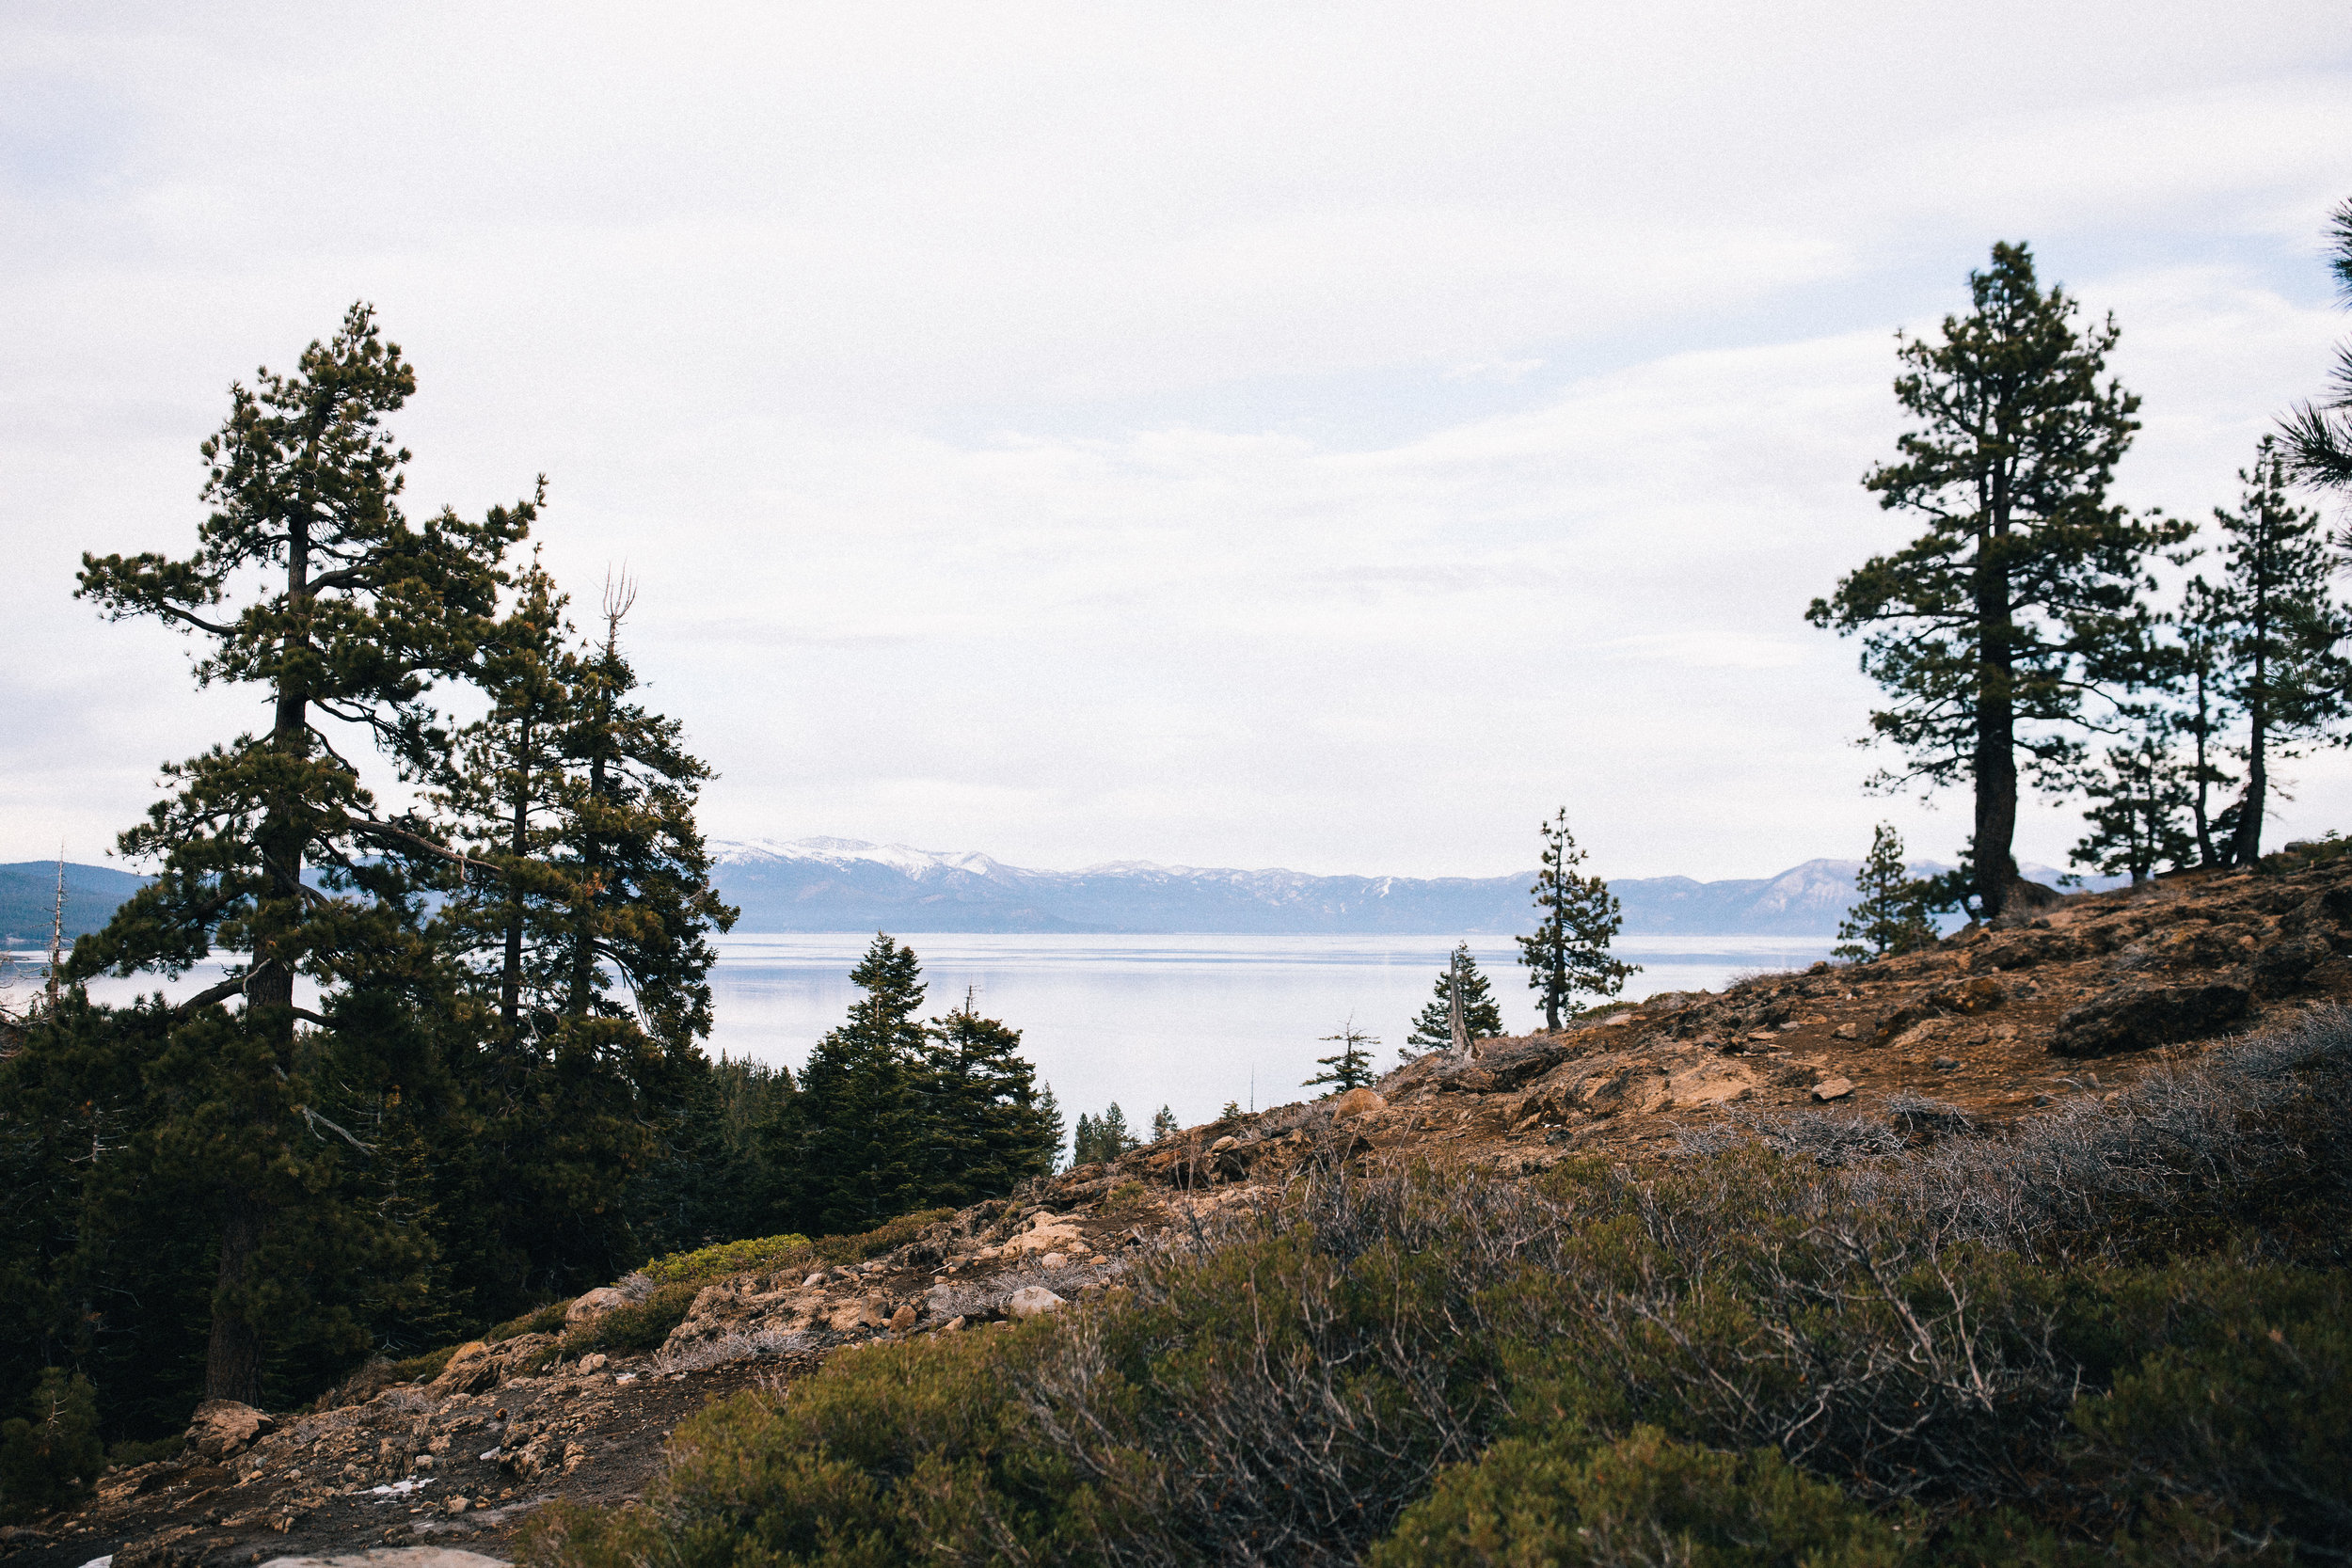 2018_01_01 Tahoe Trip 2018 Edited Full Resolution 0028.jpg